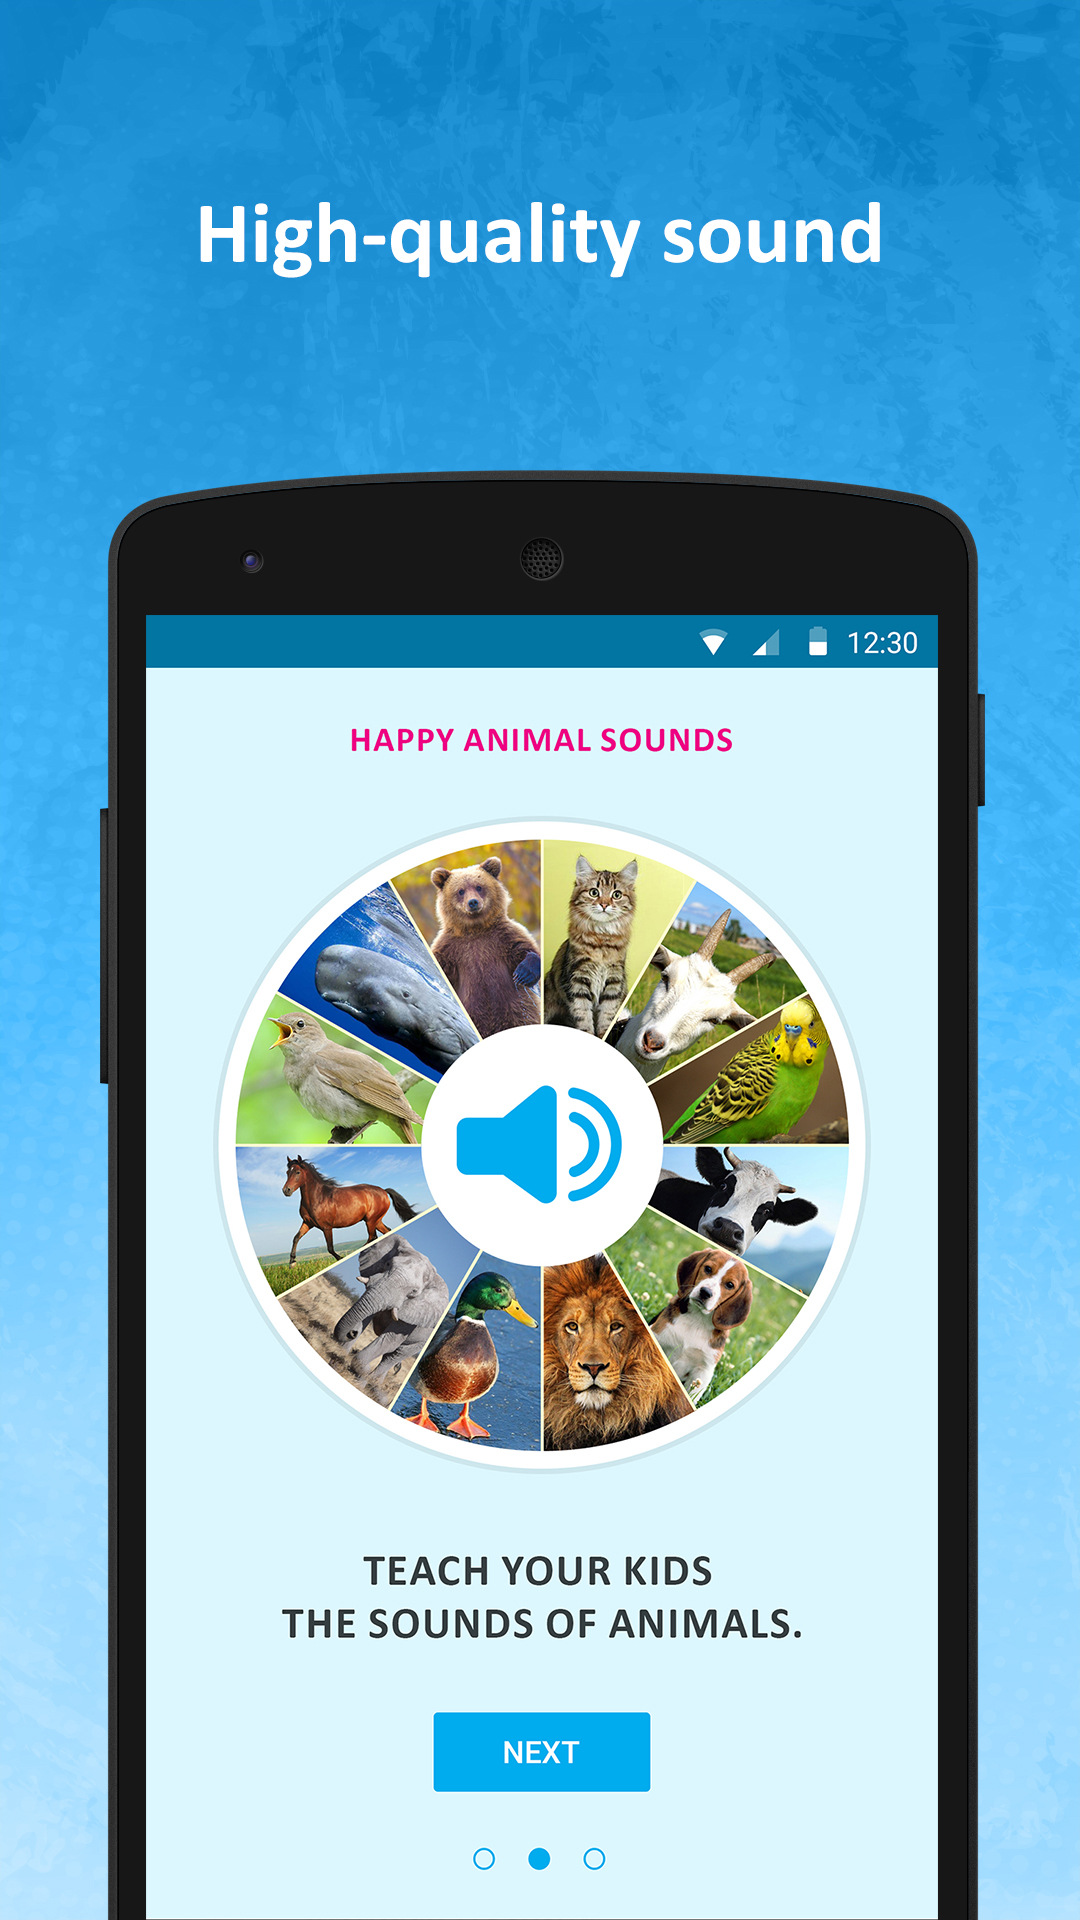 Happy animal sounds